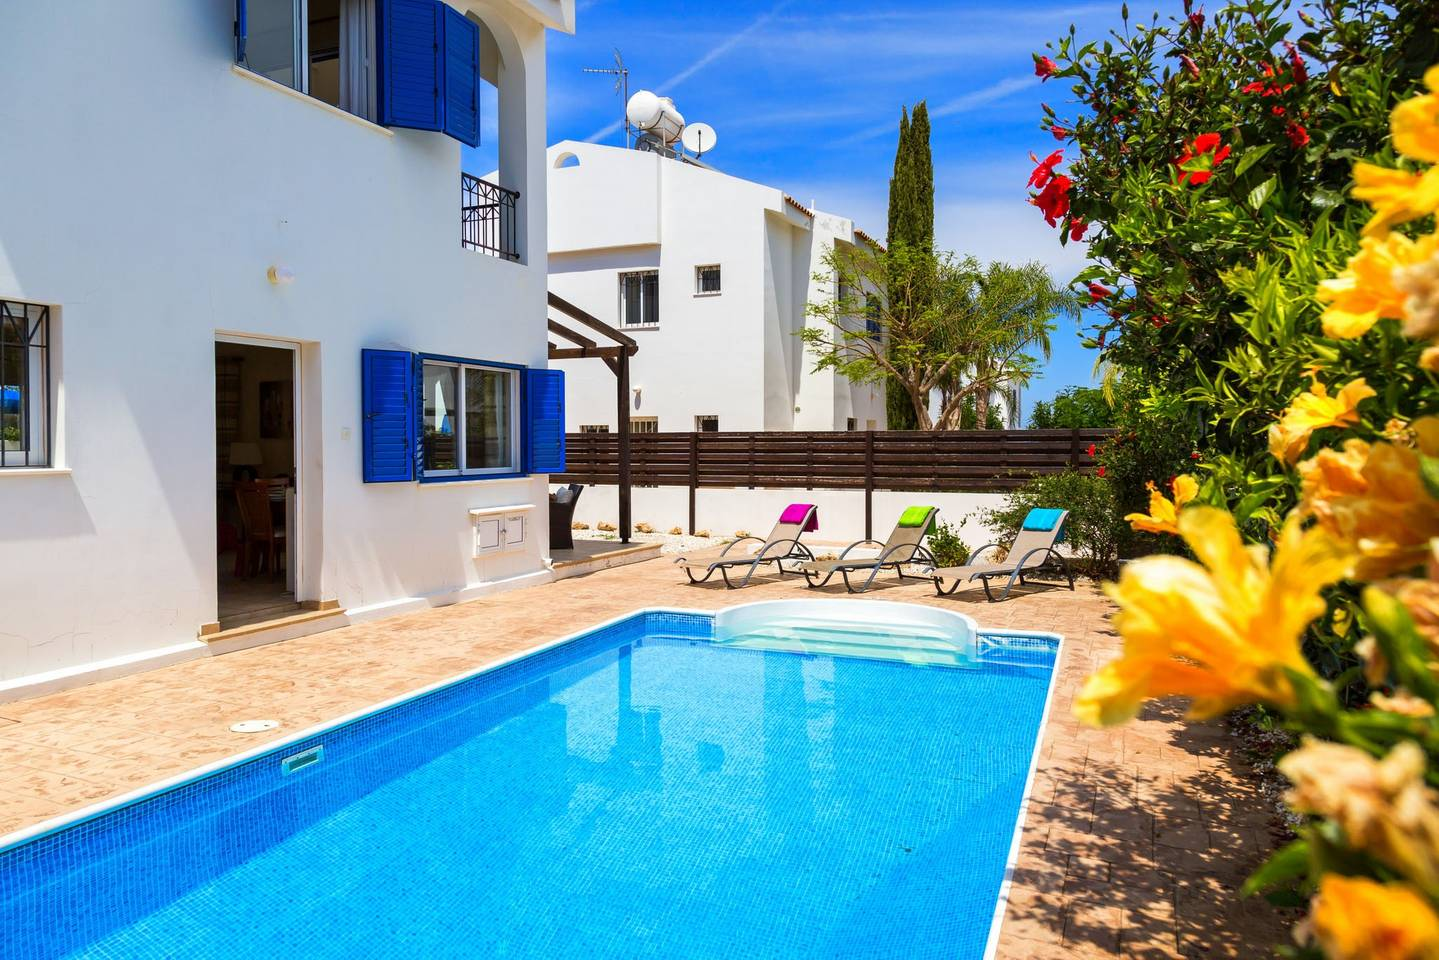 Apartment Villa Evace - 3 Bedroom Villa with Private Pool - 100m from Beach photo 18516350